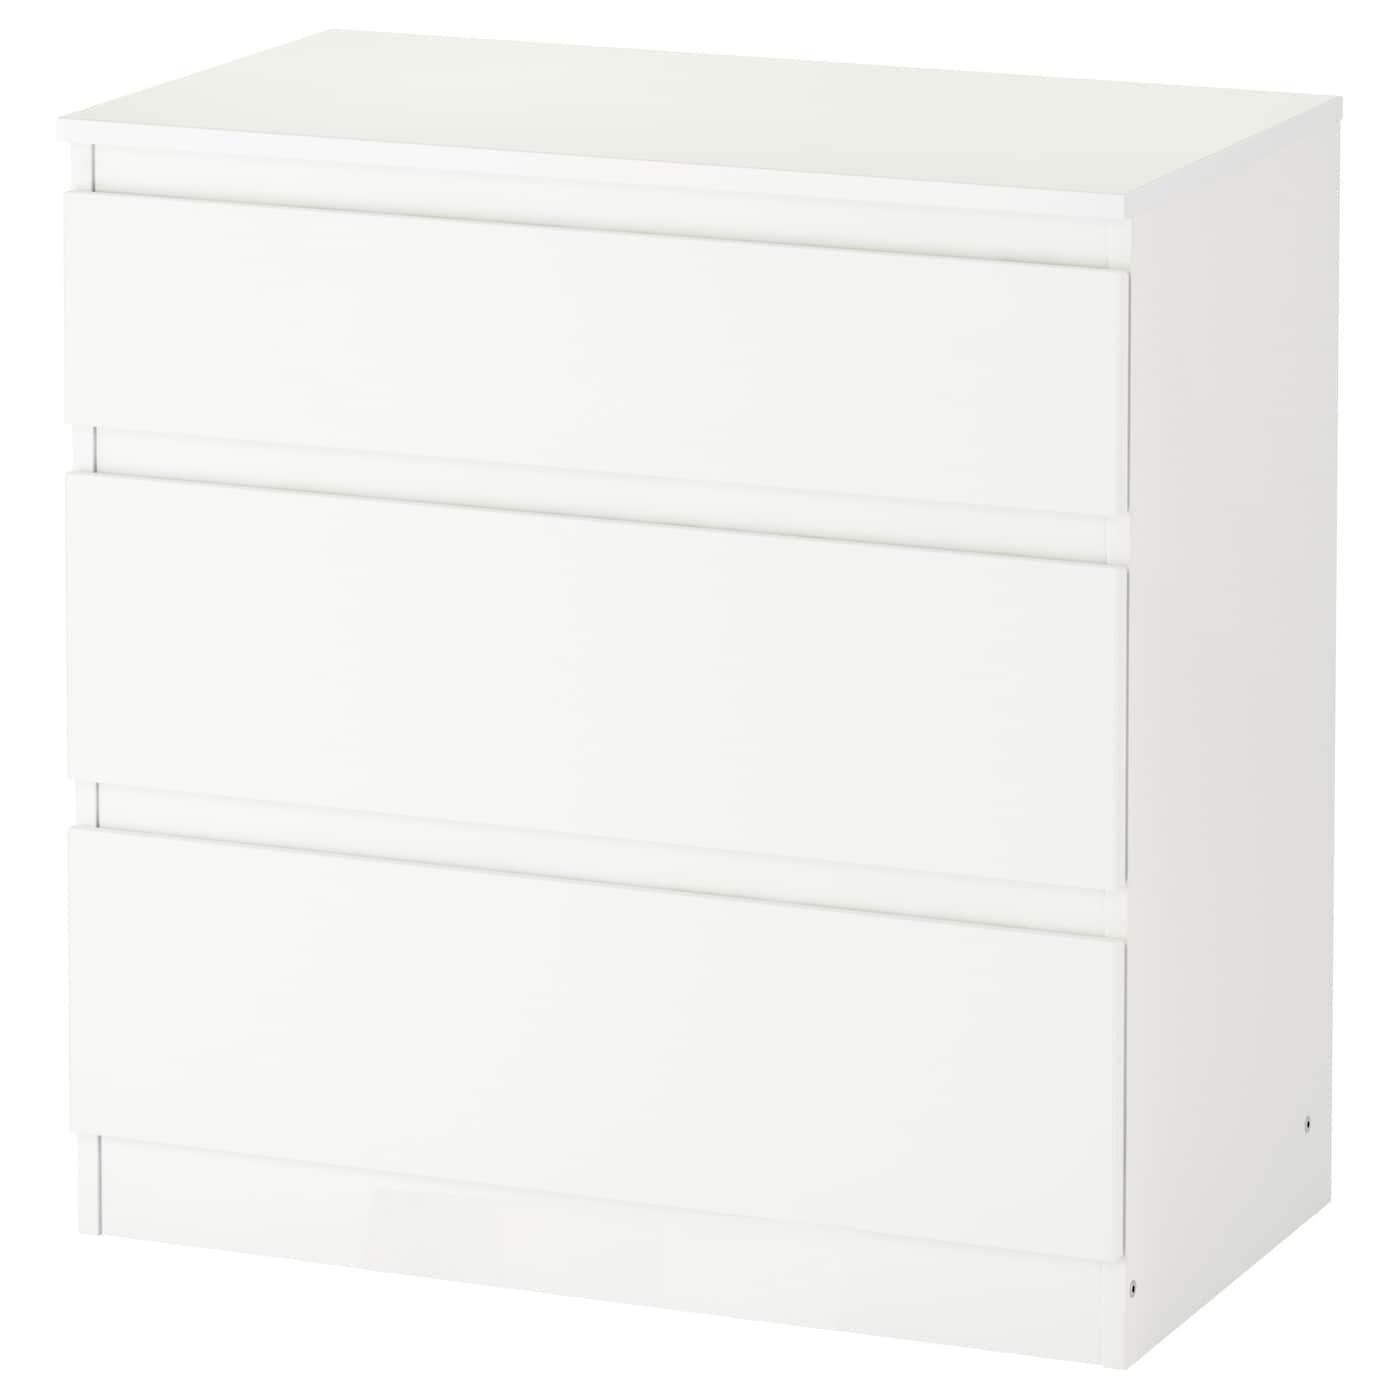 Bostrak wardrobe white 80x50x180 cm ikea for Armoire de chambre ikea